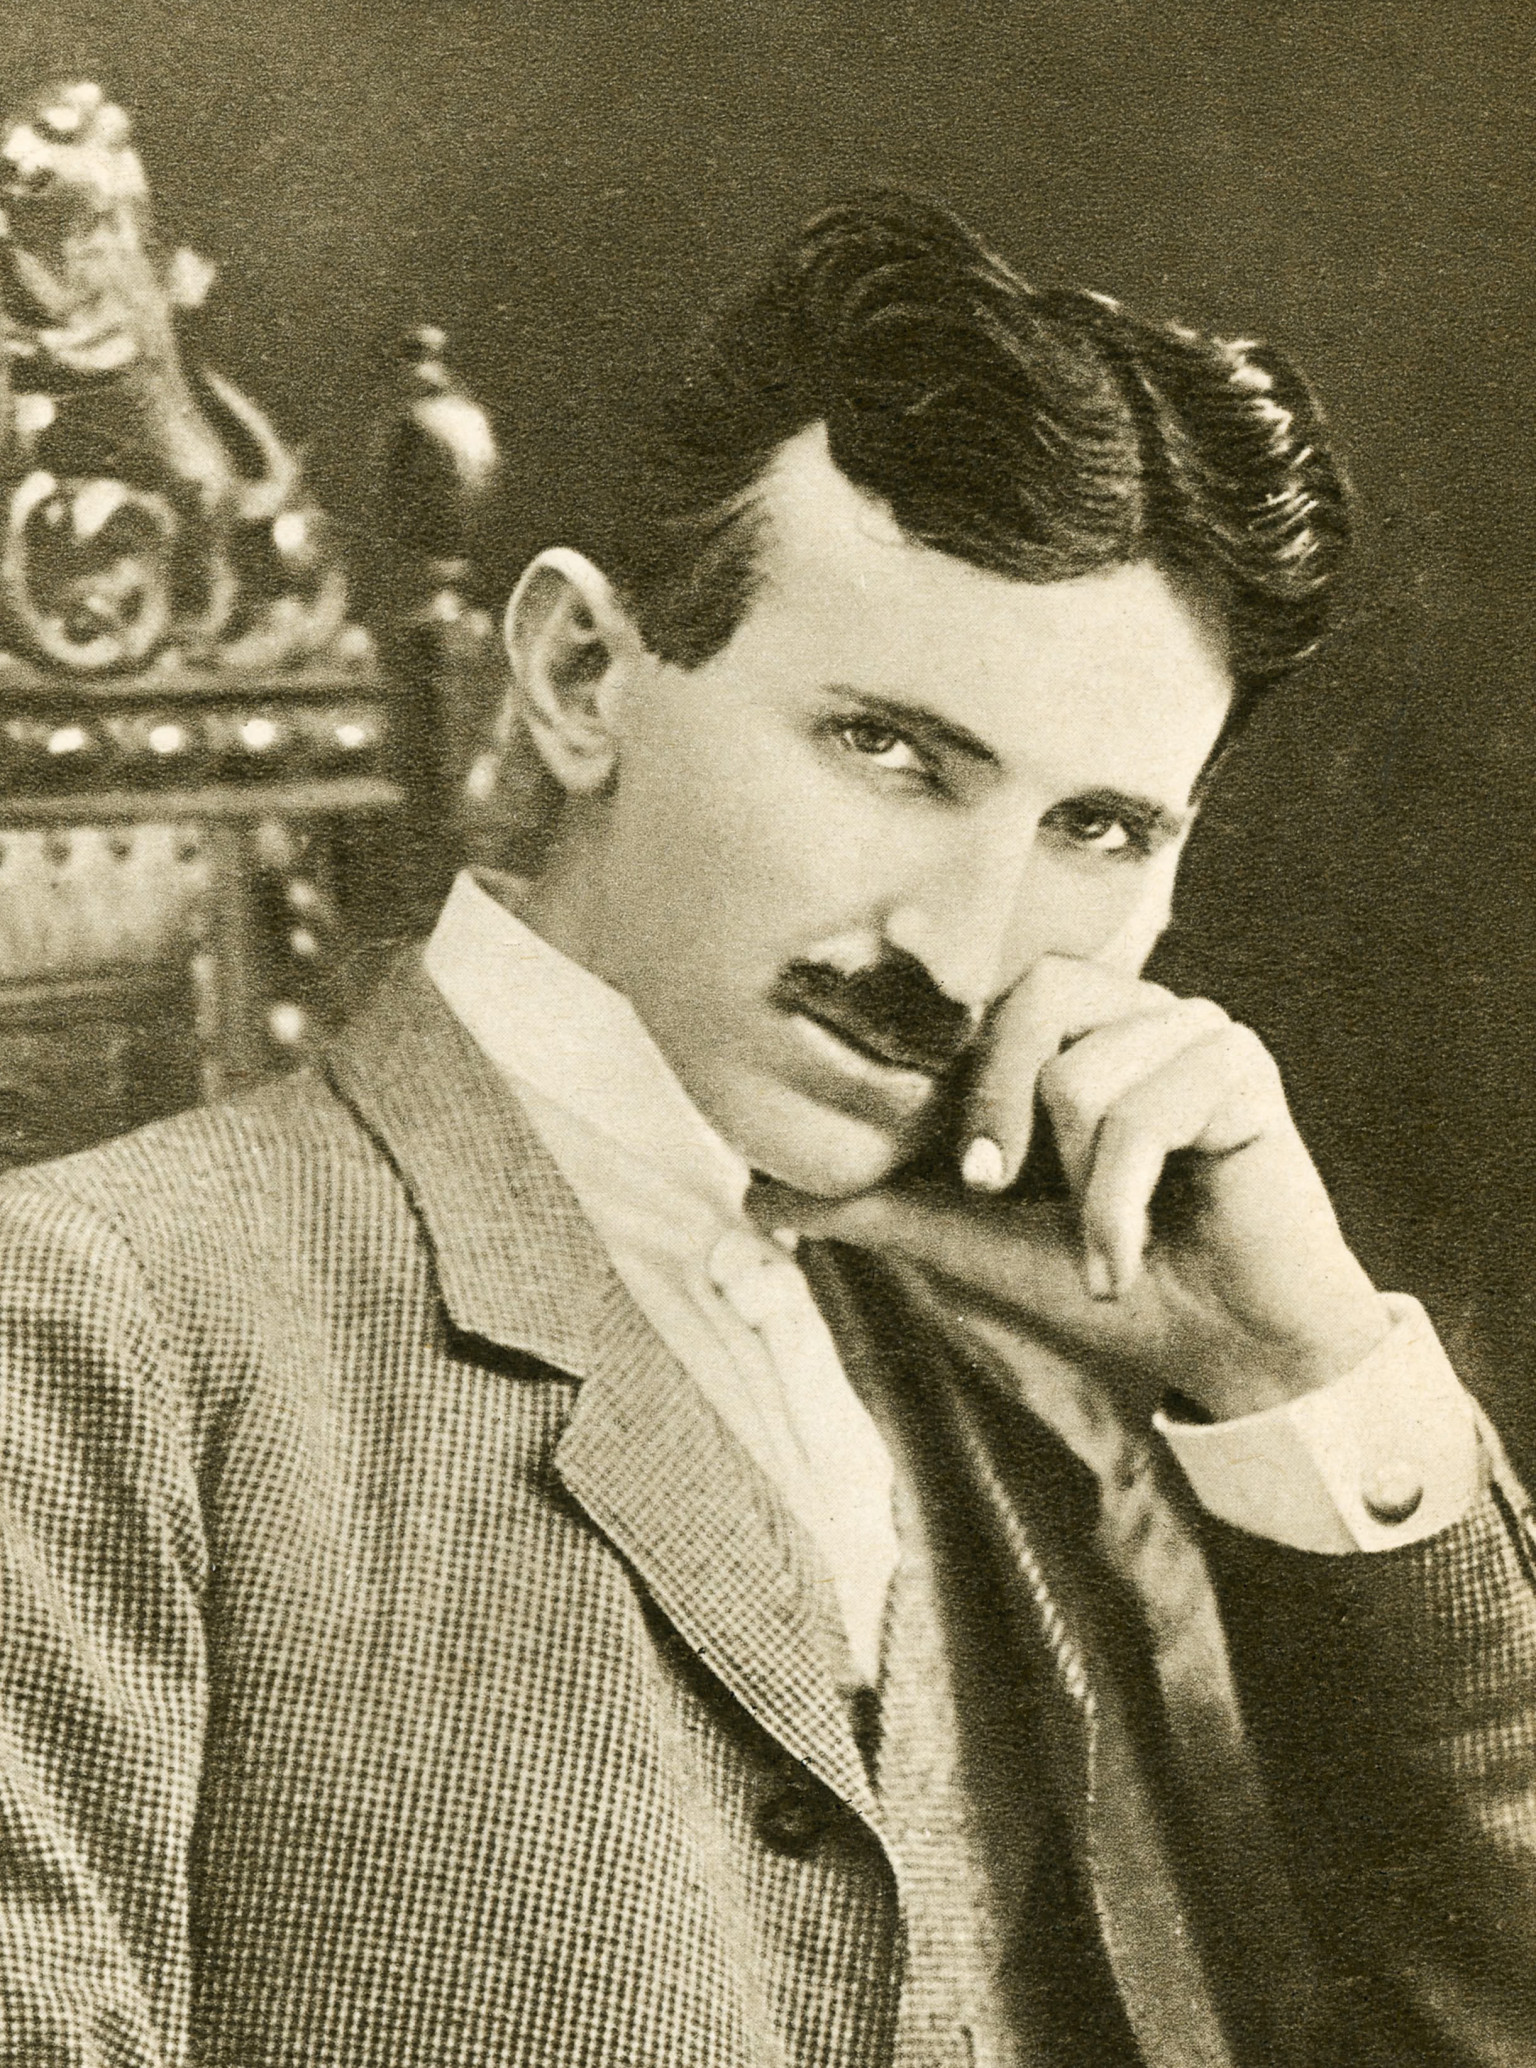 nikola tesla - photo #15